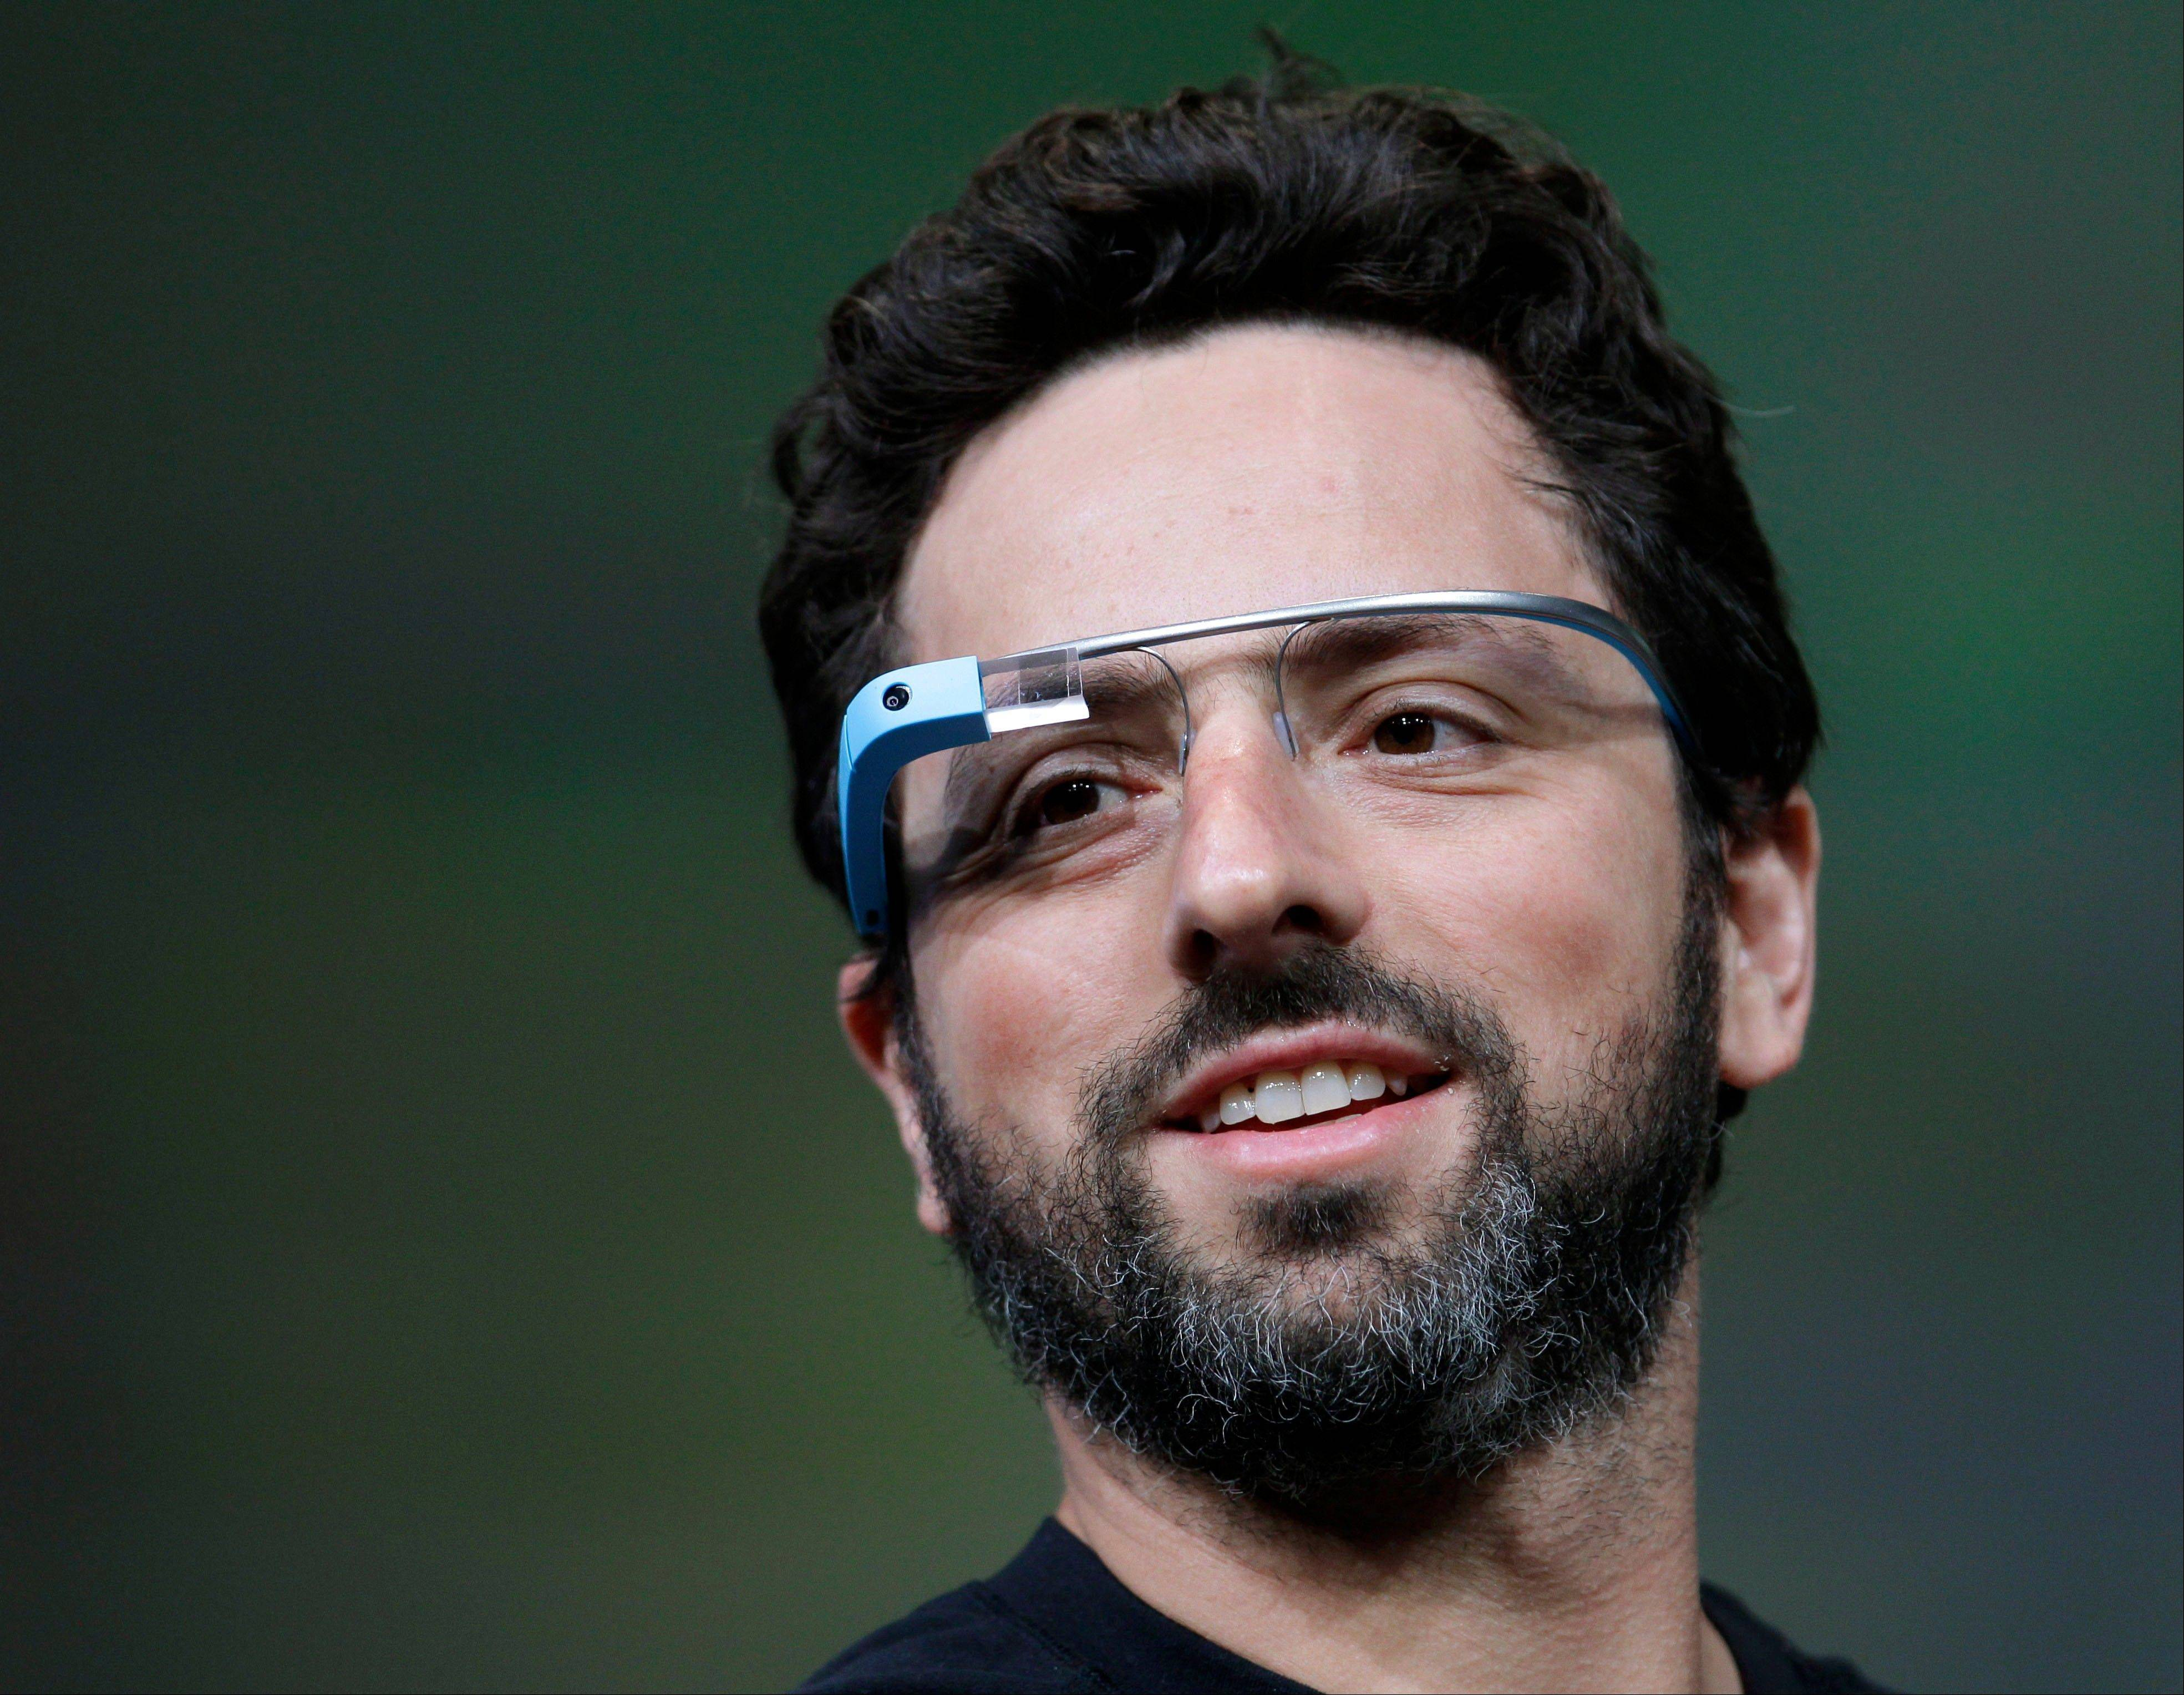 Google co-founder Sergey Brin demonstrating Google�s new Glass, wearable internet glasses, at the Google I/O conference in San Francisco.